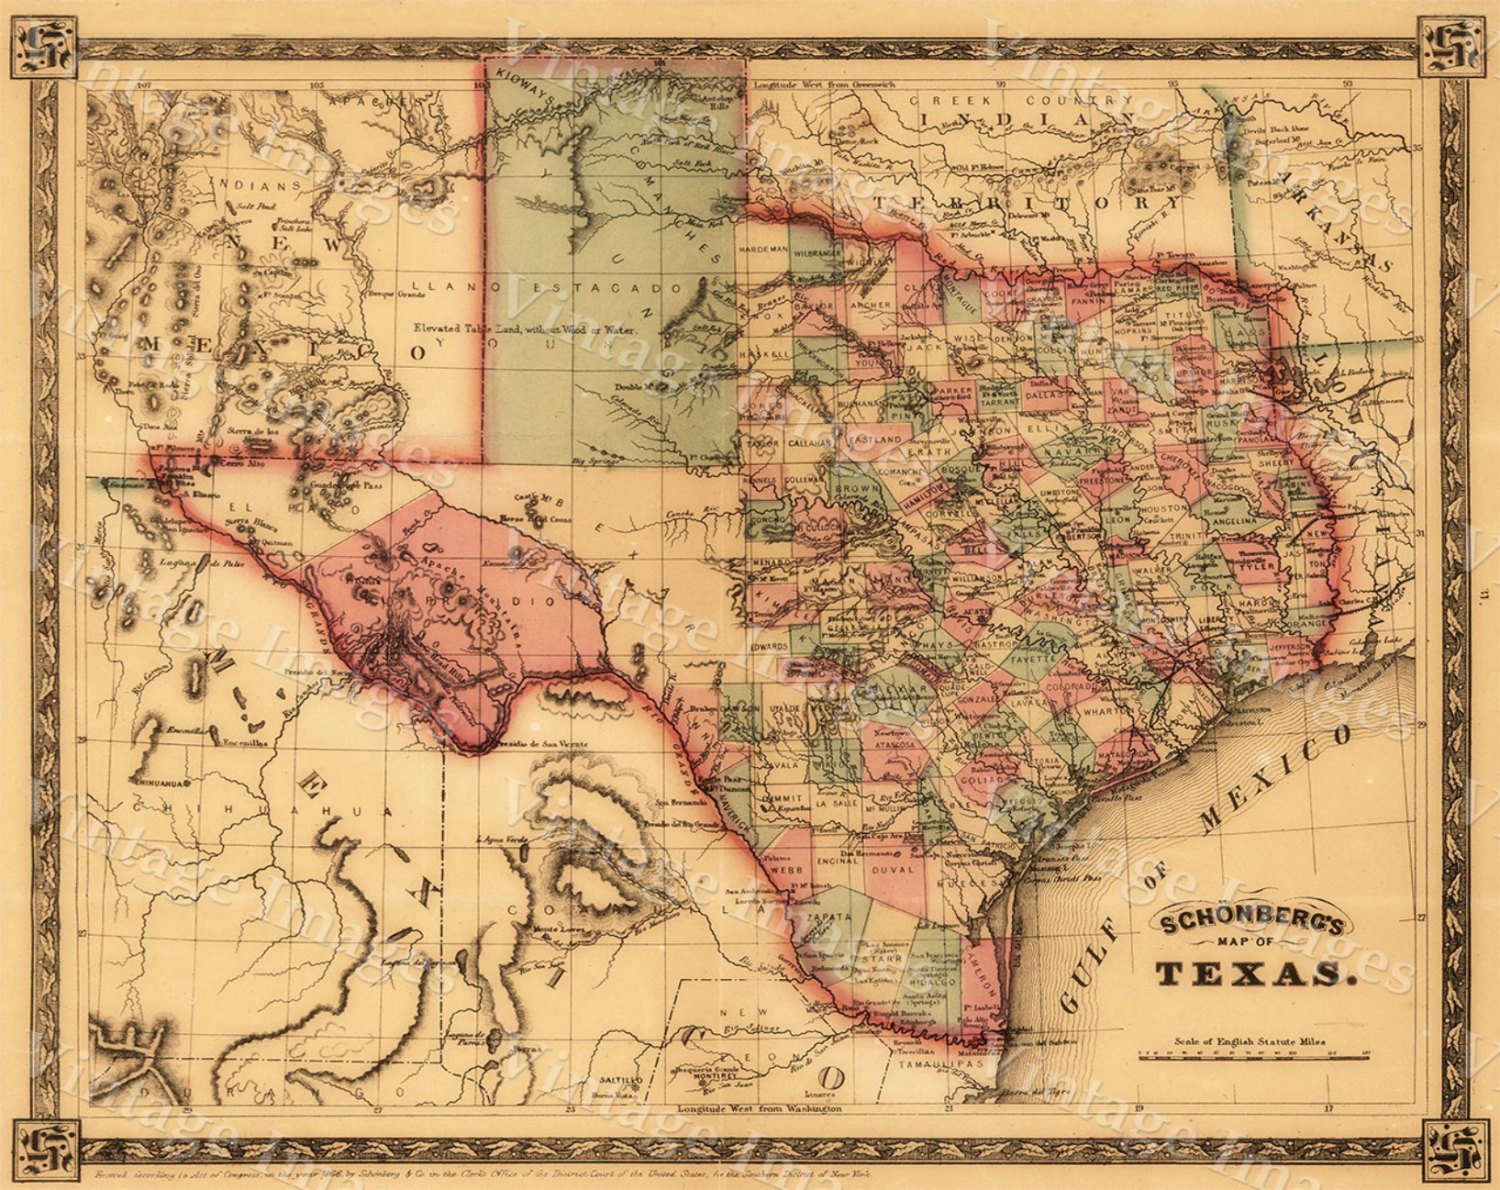 1866 Texas Map Old West Map Antique Texas Map Restoration   Etsy - Antique Texas Map